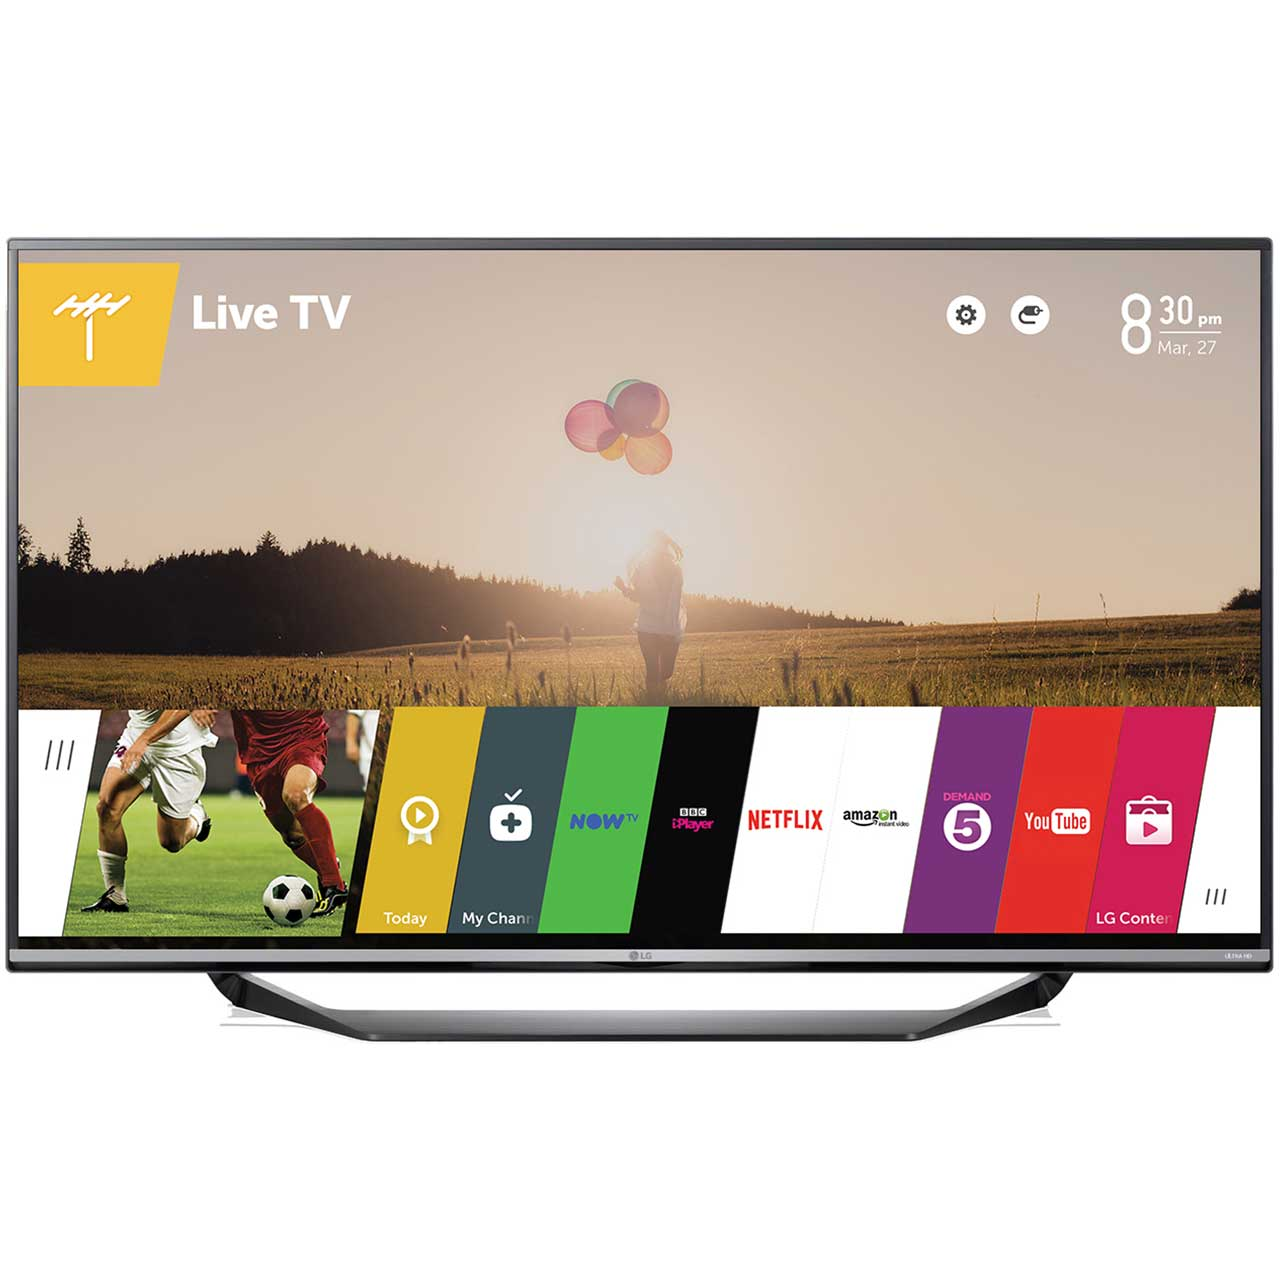 lg 49 inch smart tv manual